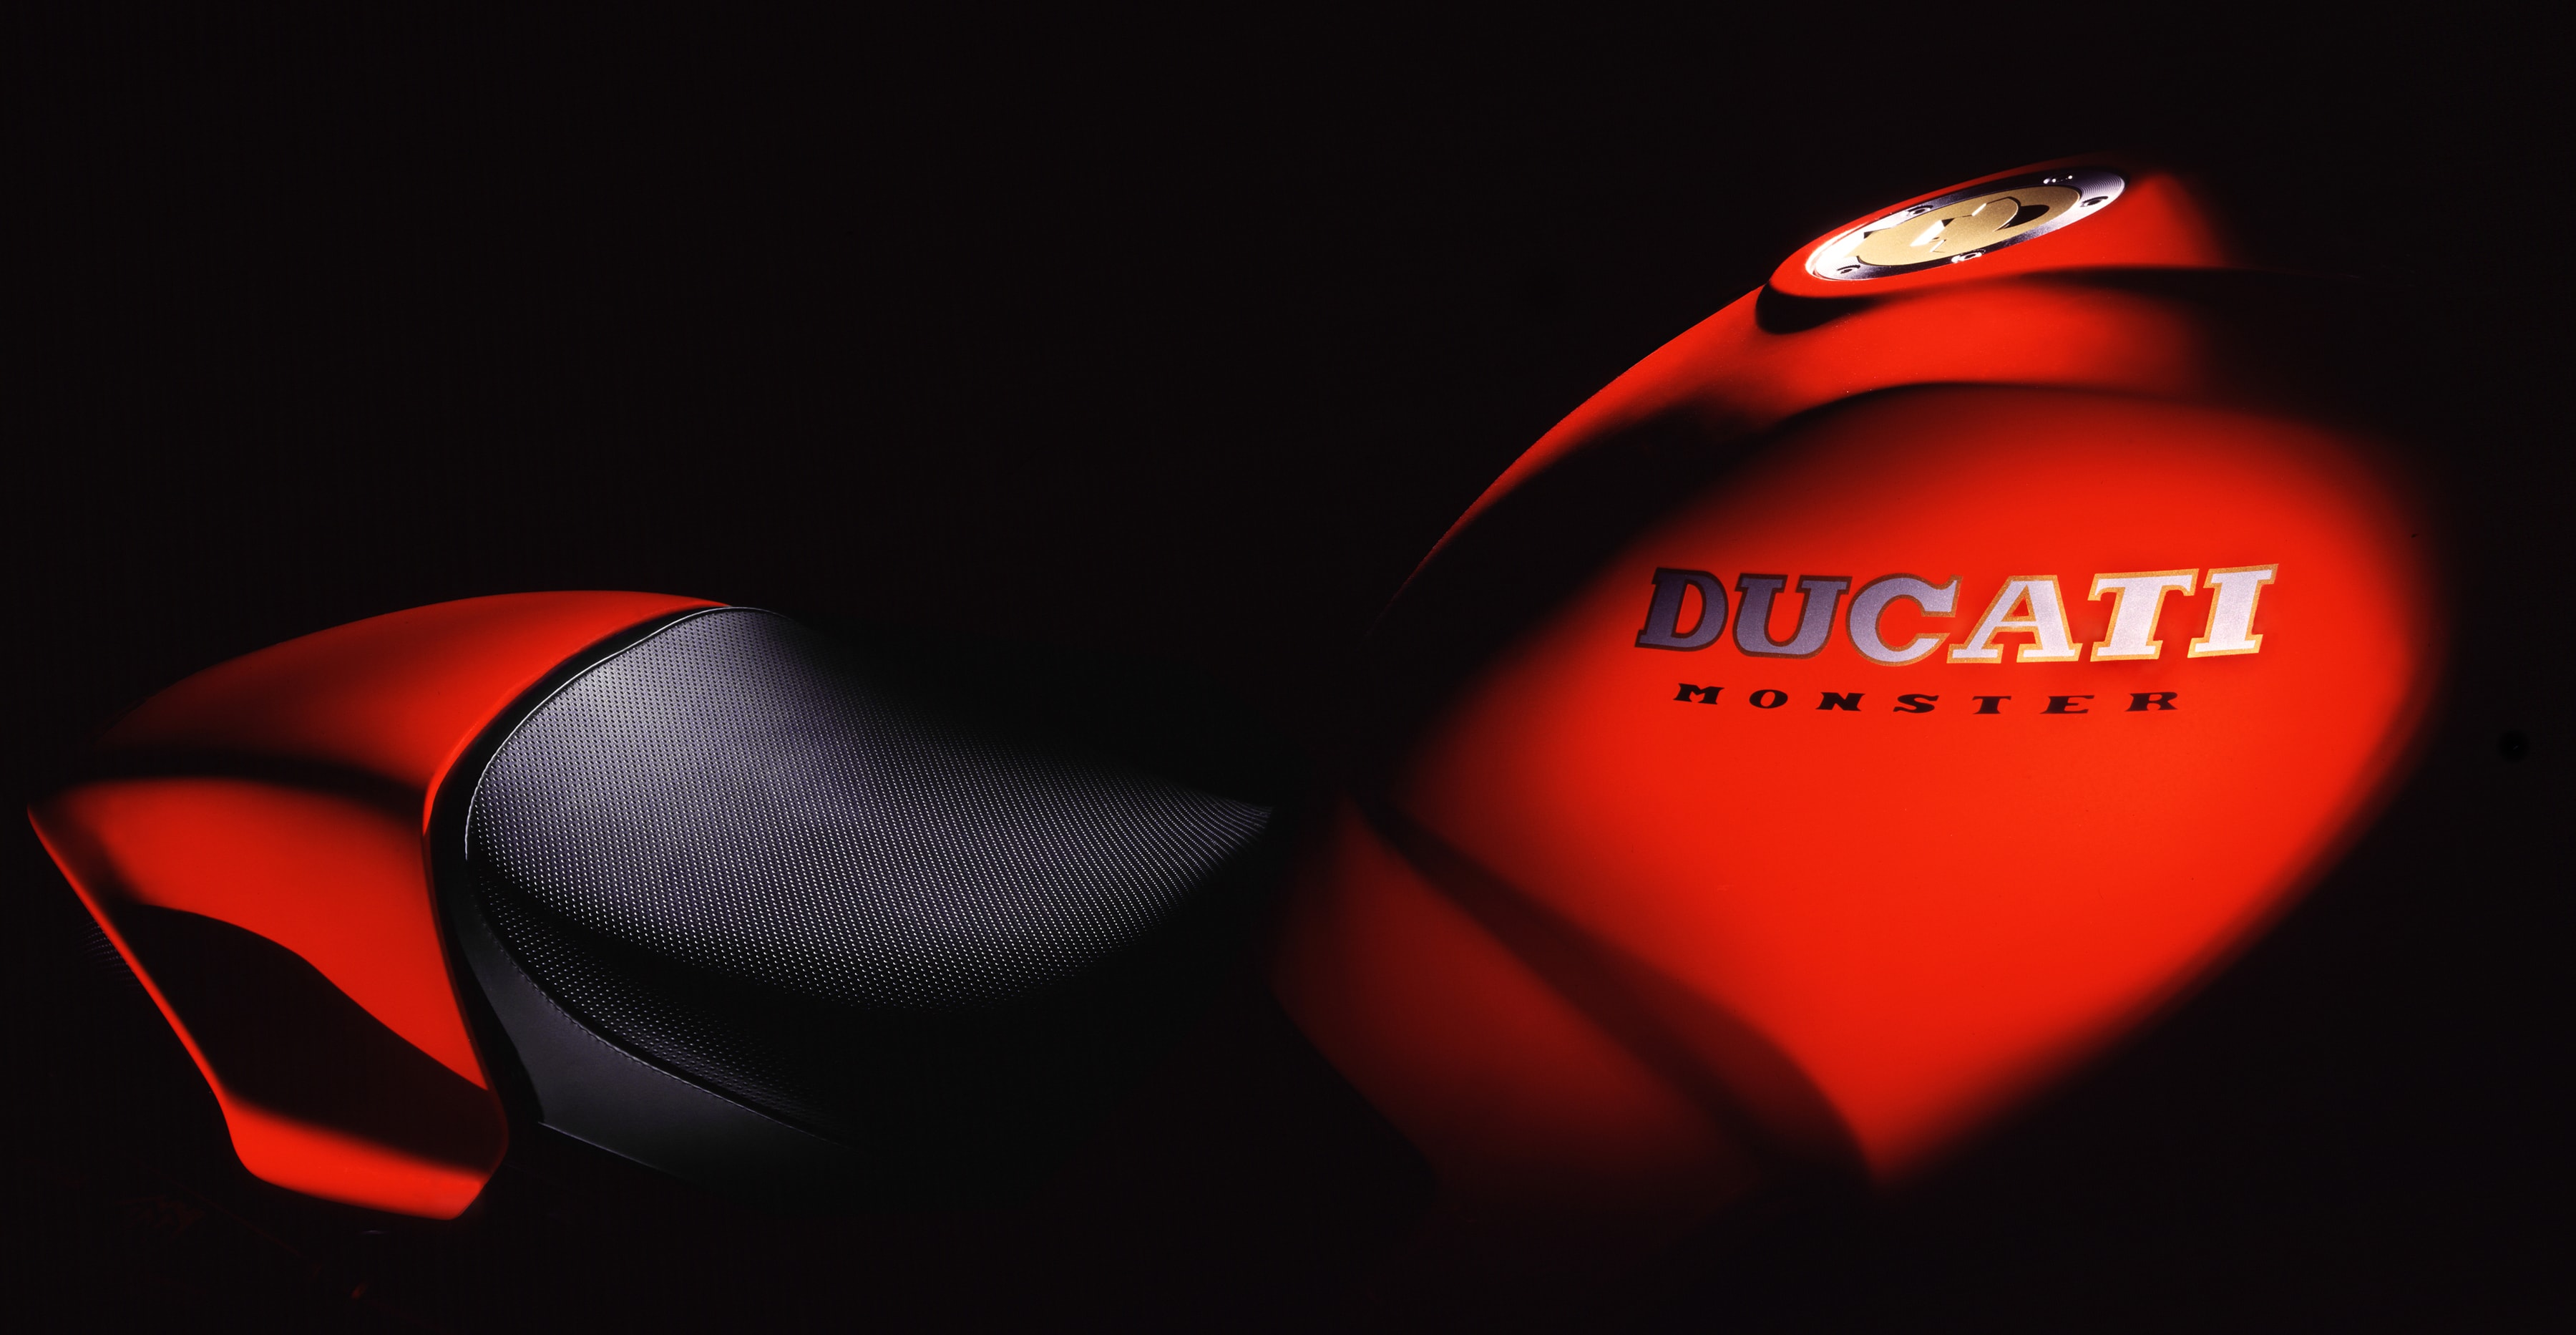 Ducati Monster by Paul Bussell